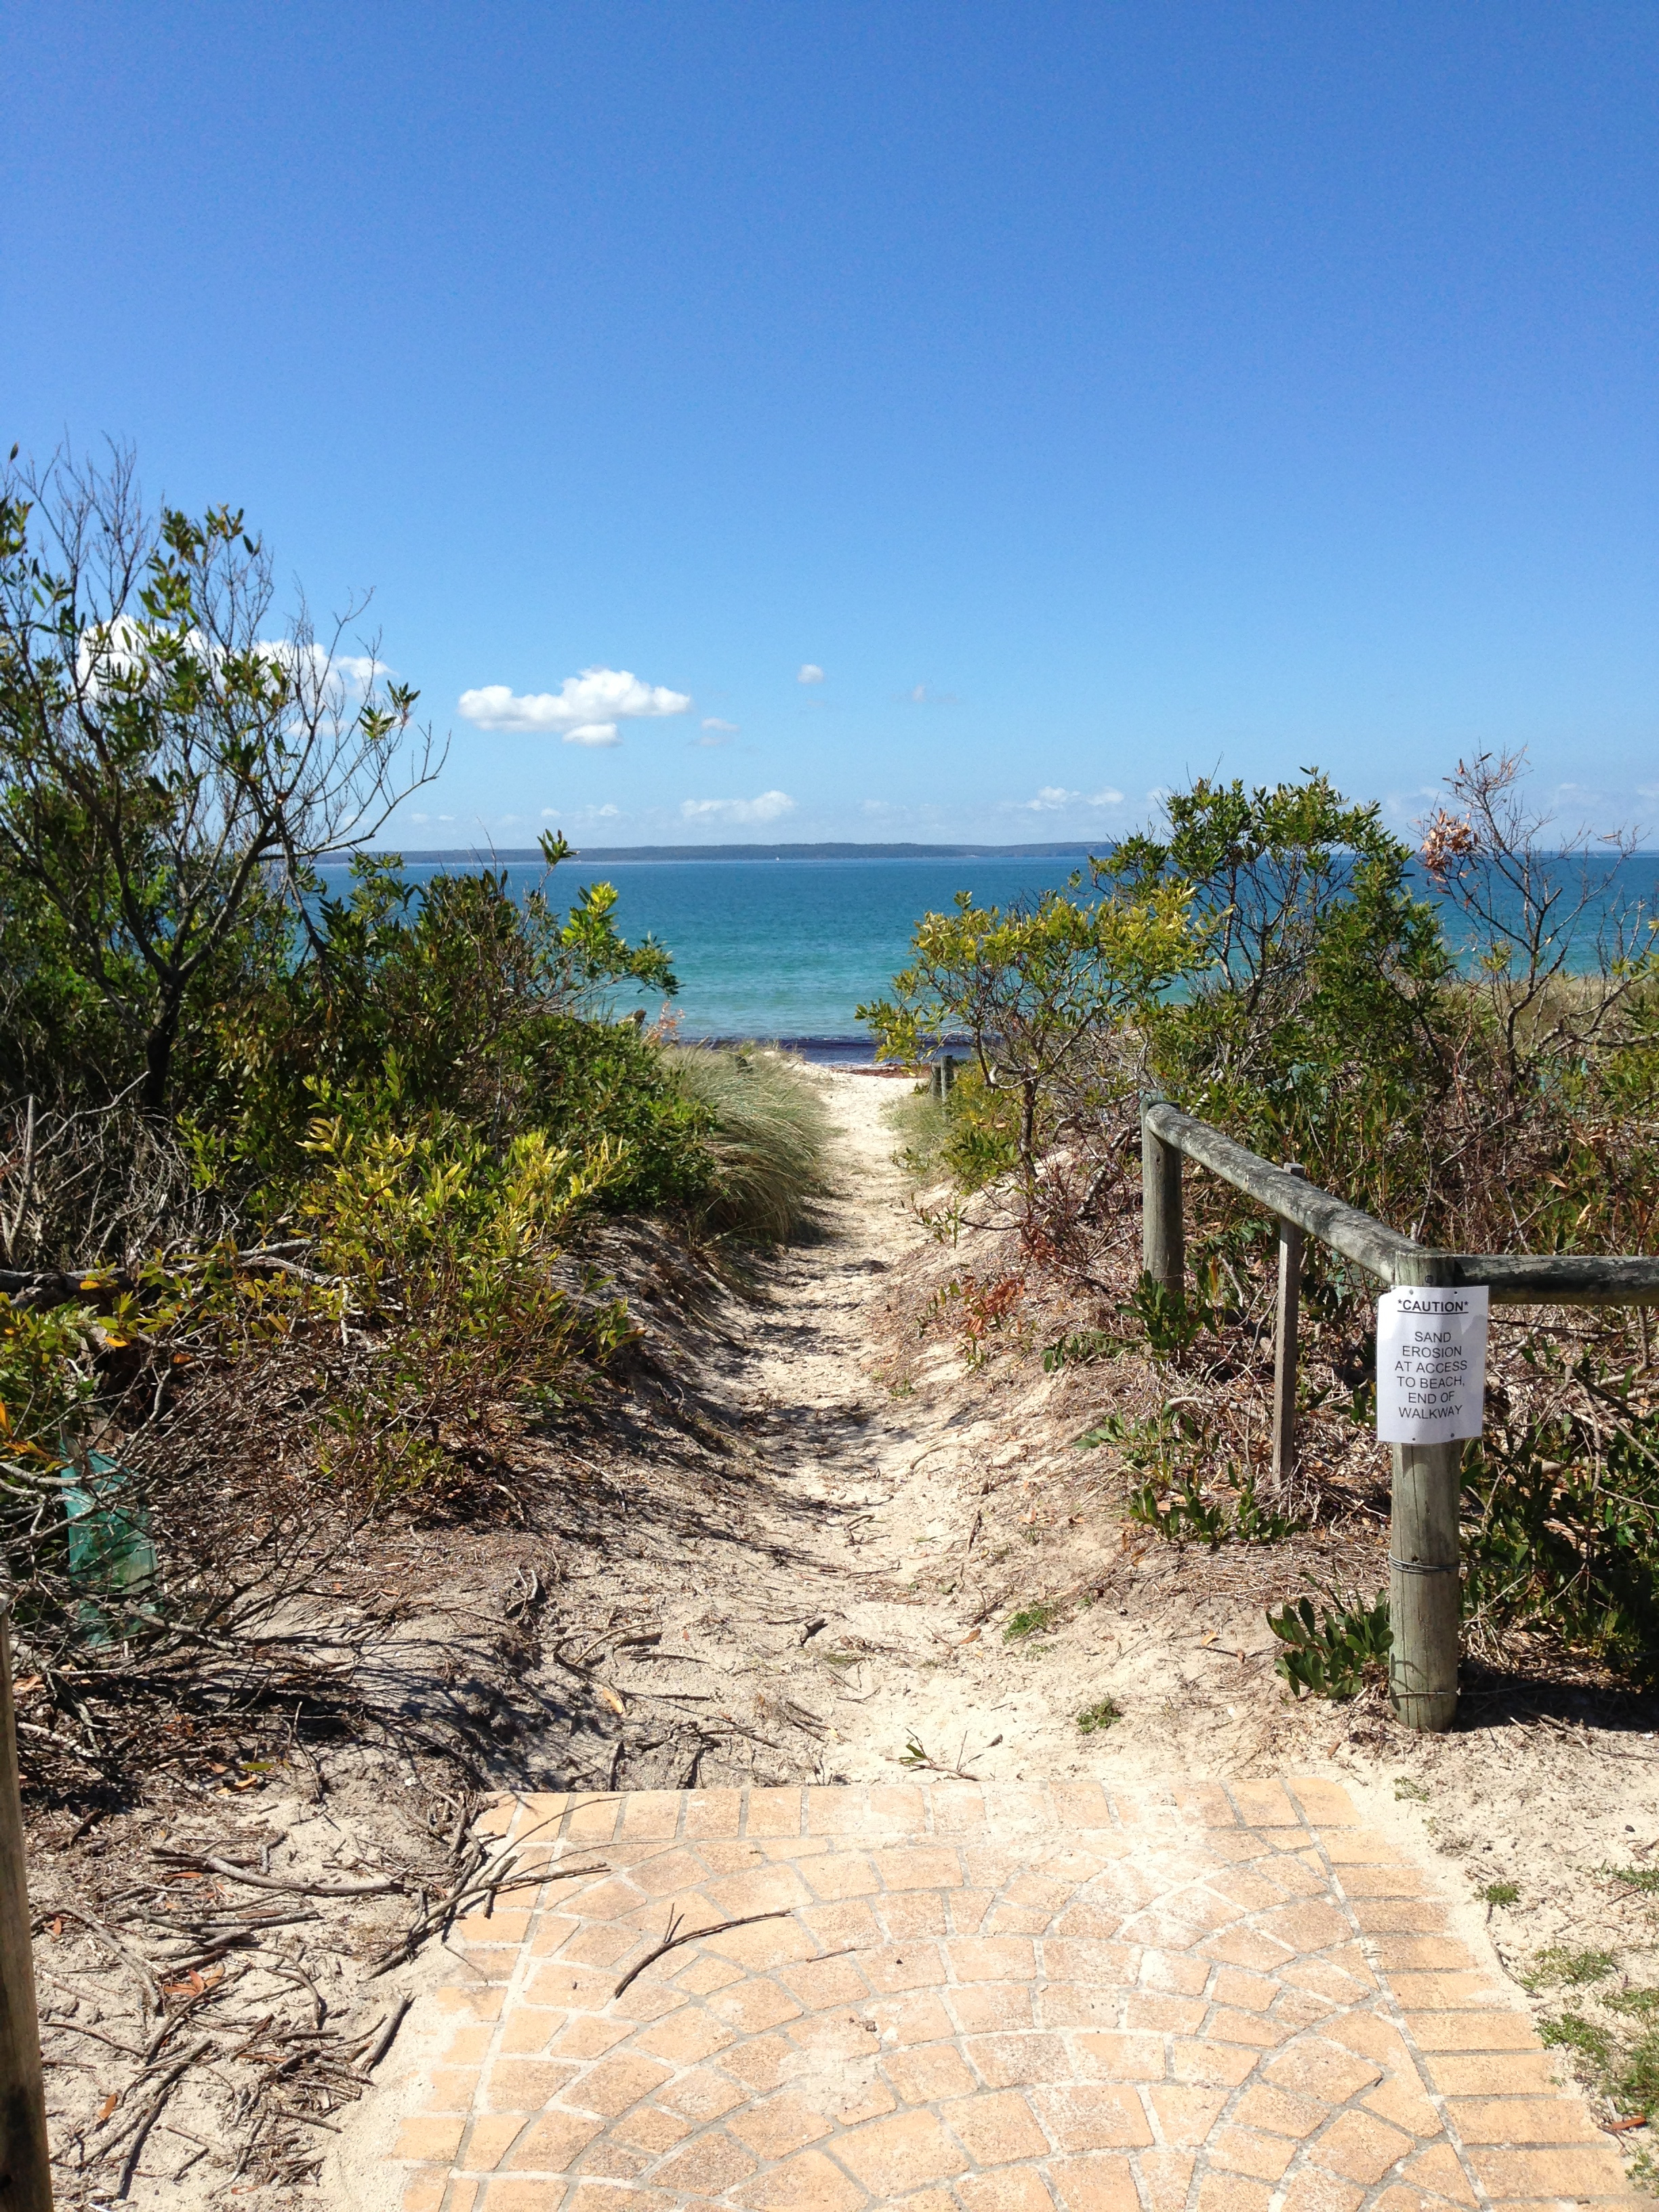 Cycleway leading you to the beach